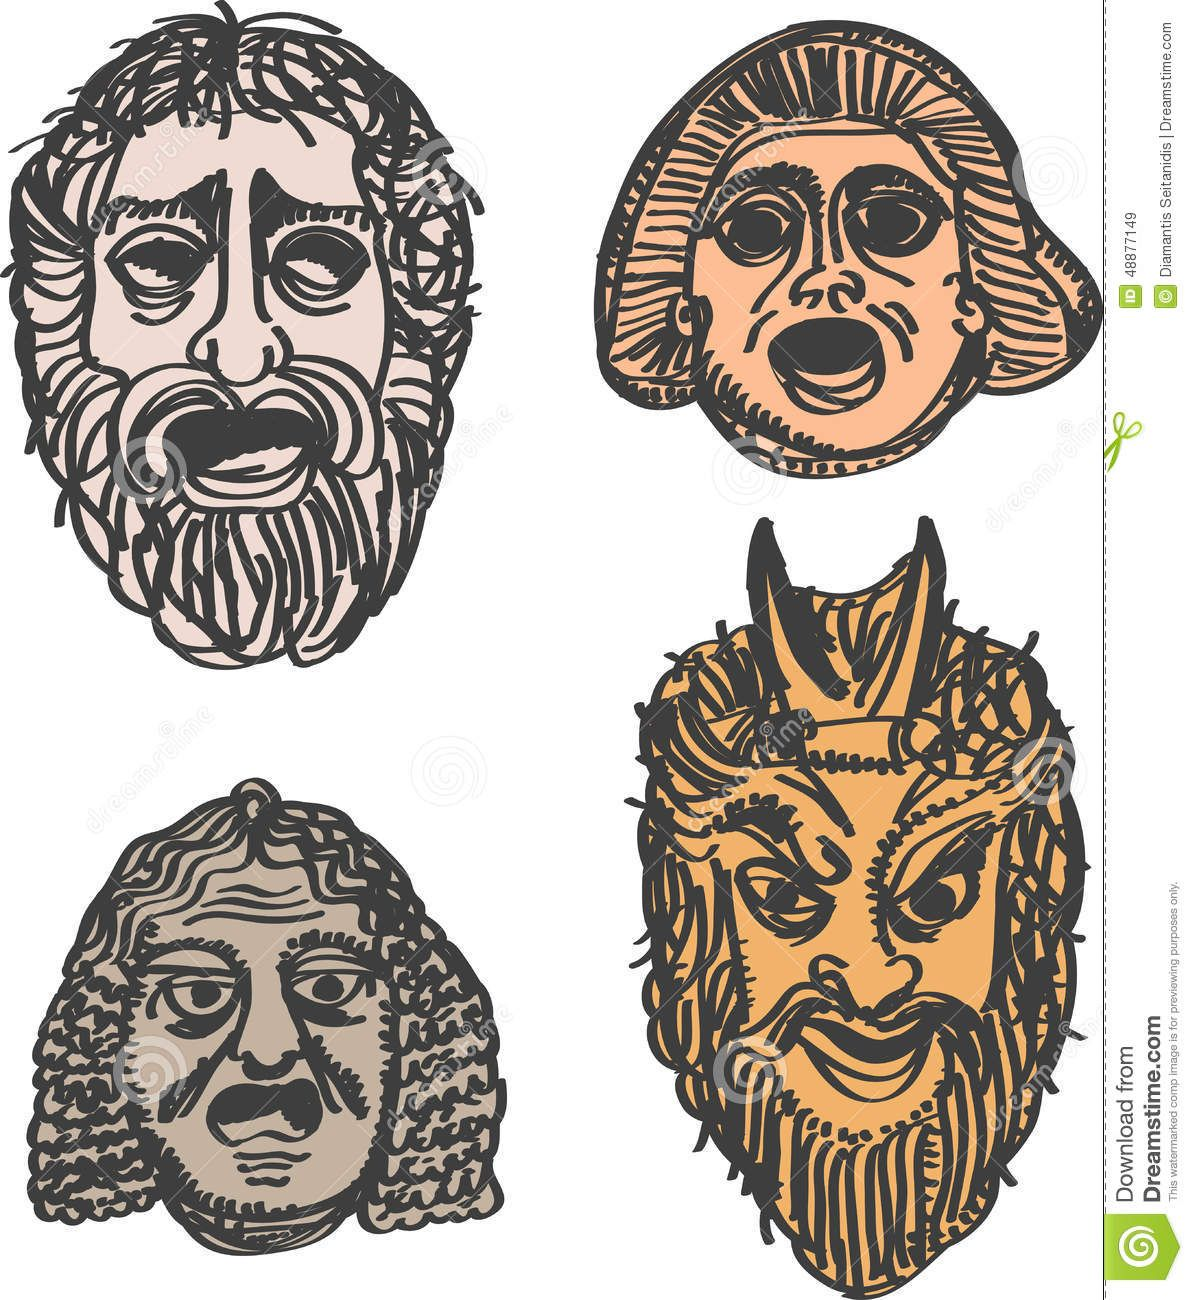 Classical ancient greek drama masks intermediate school for Ancient greek mask template